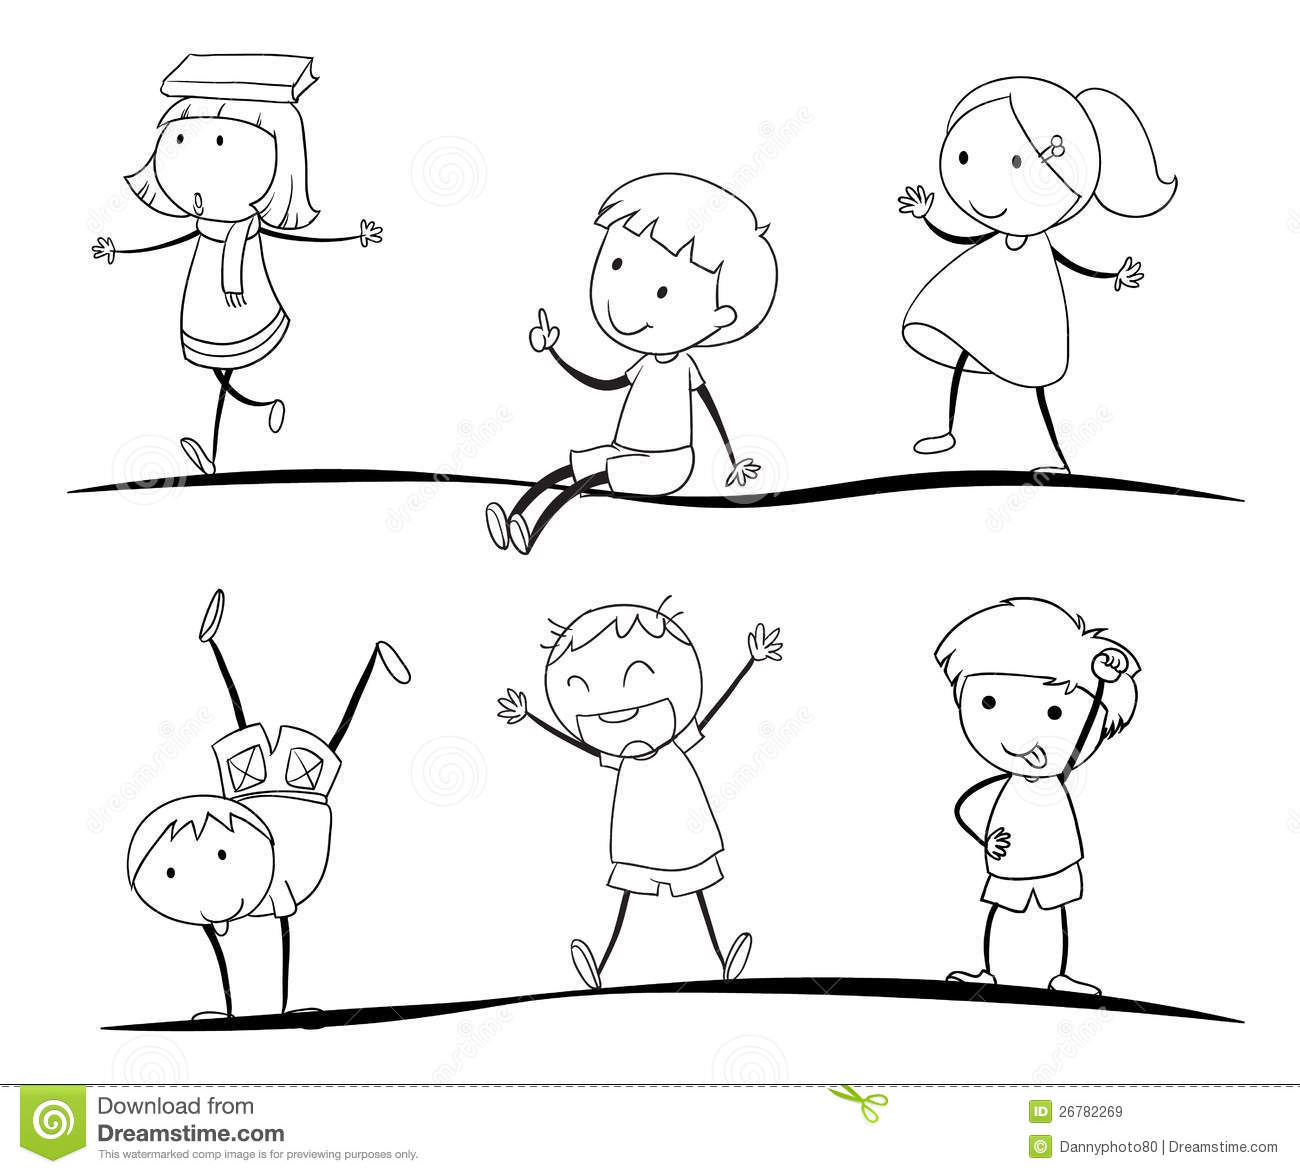 kids sketches royalty free stock images - Kids Sketches